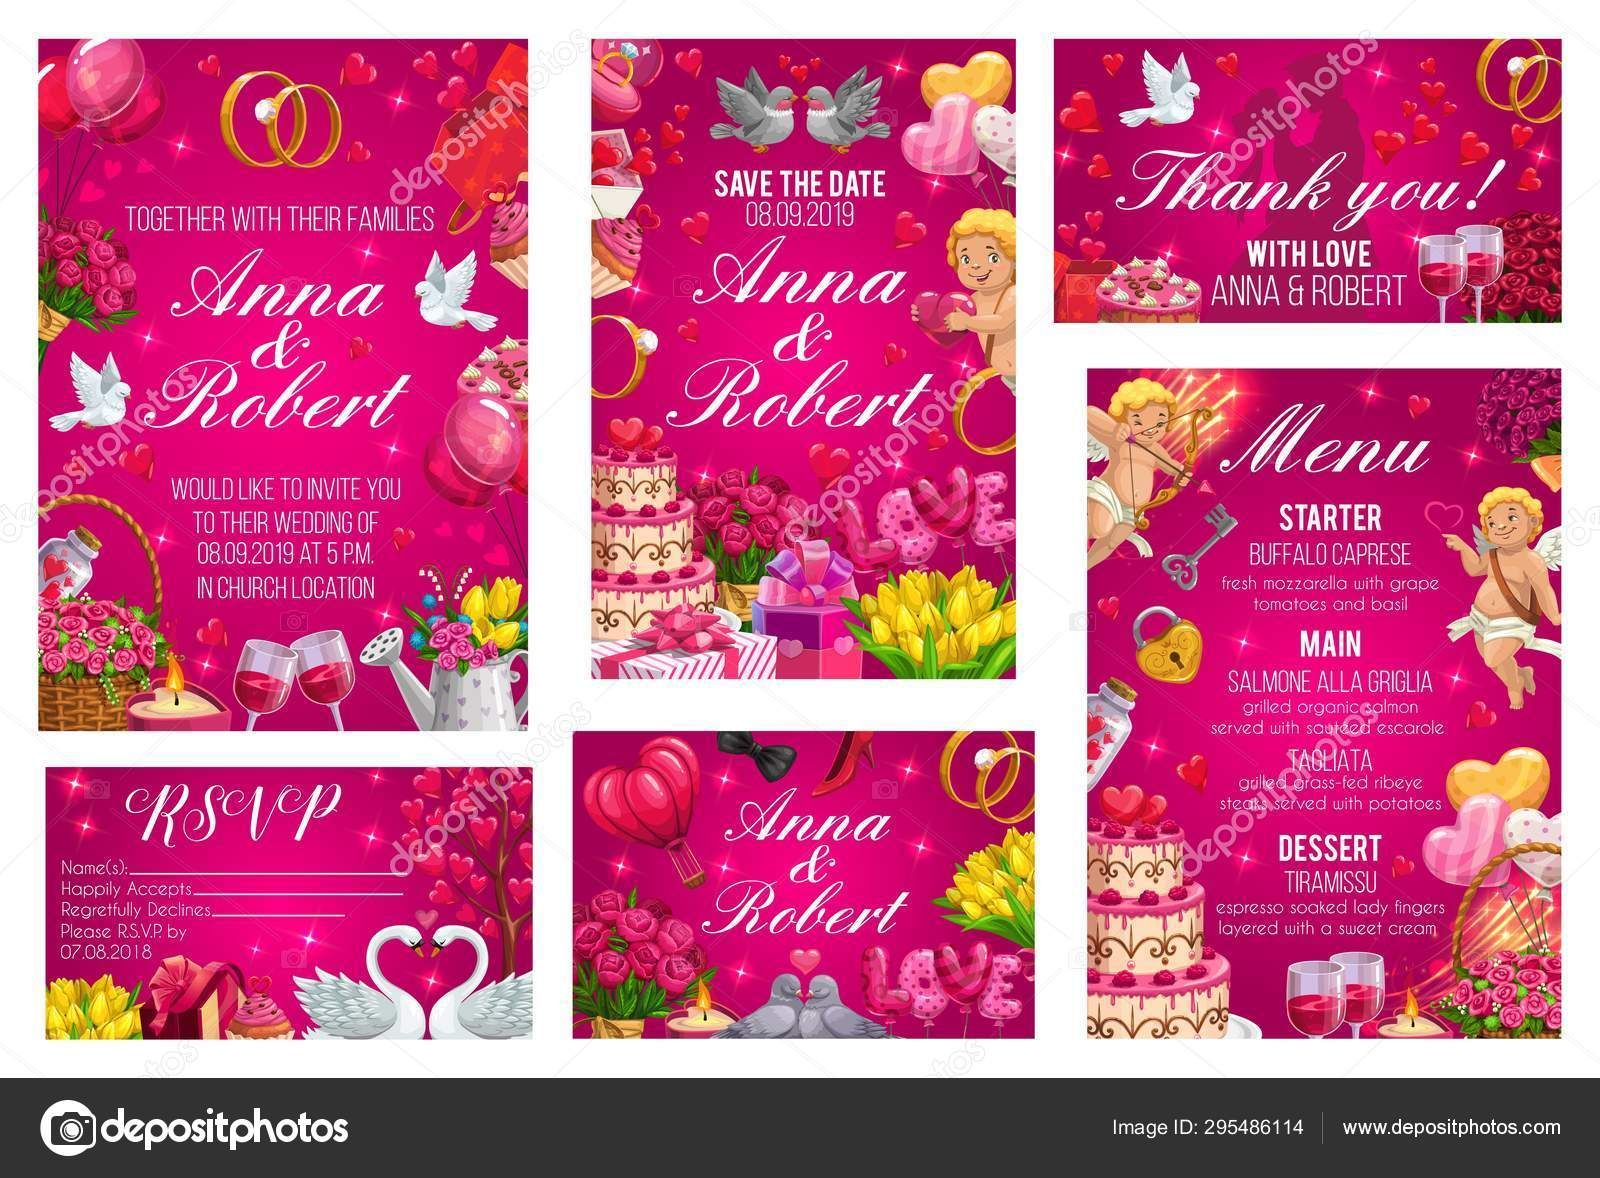 Engagement Invitation Template Vector Download in 4